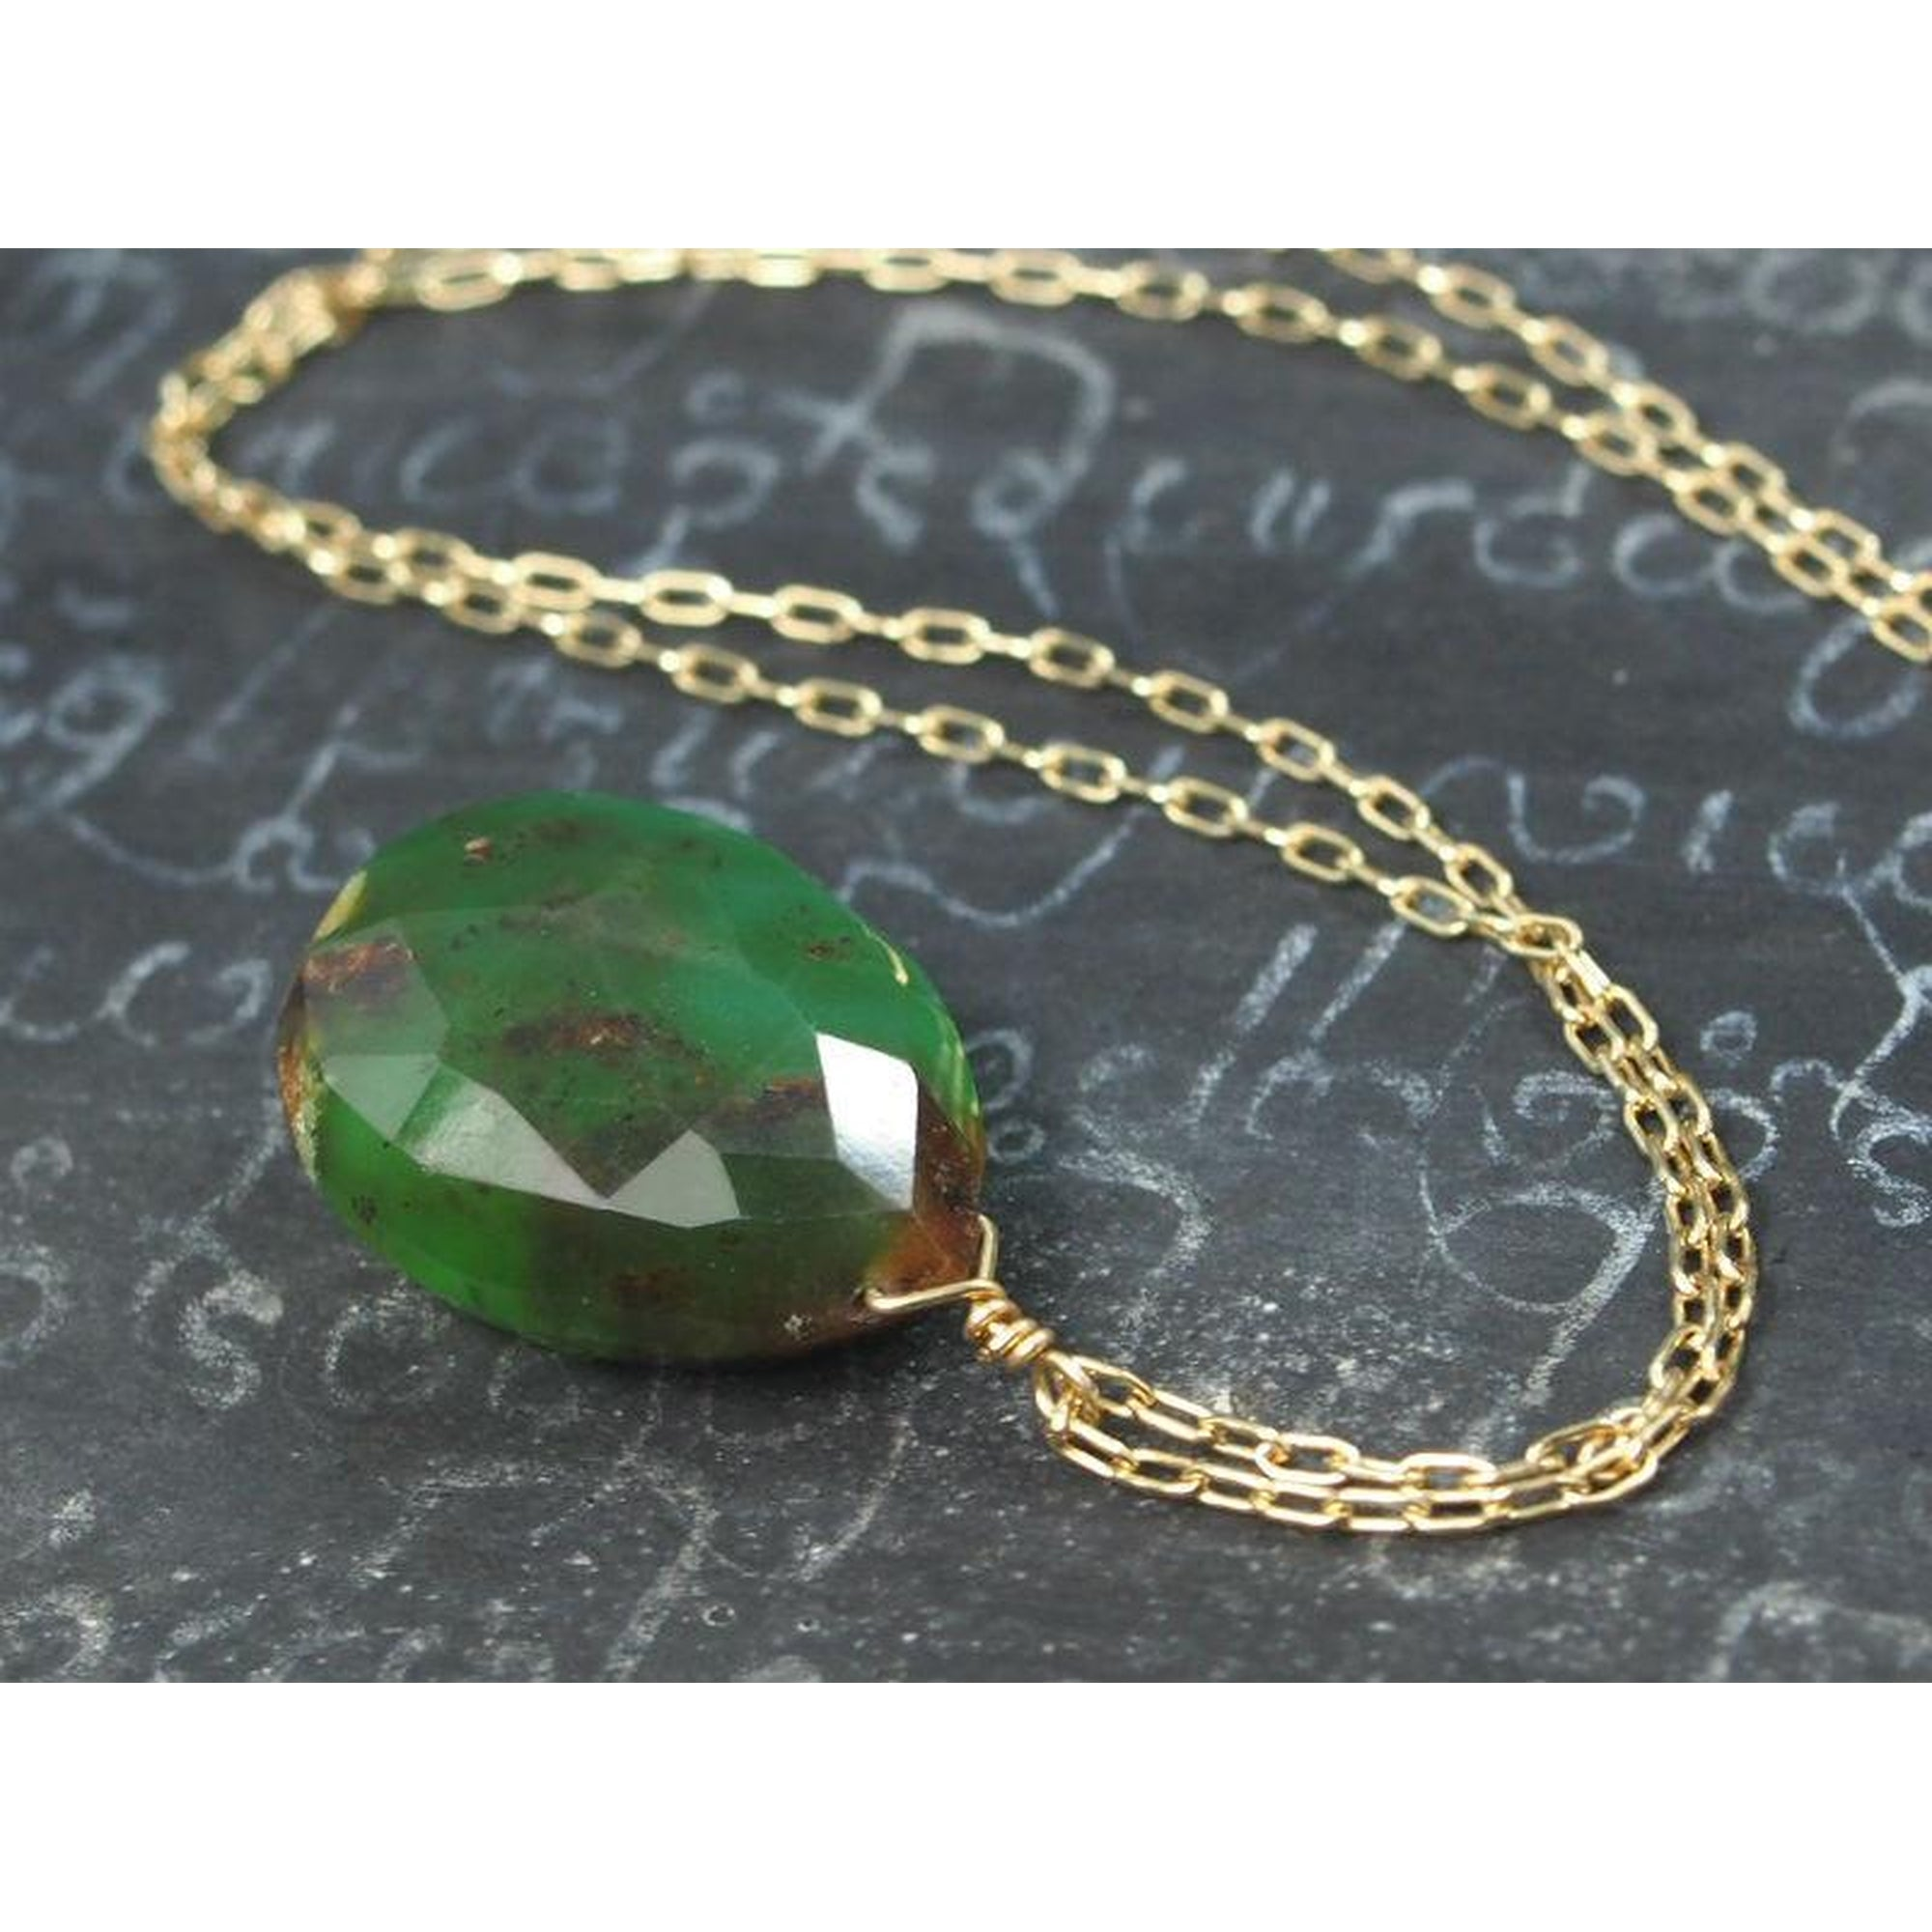 to translucent f bluish green item full necklace emerald long click expand chrysoprase